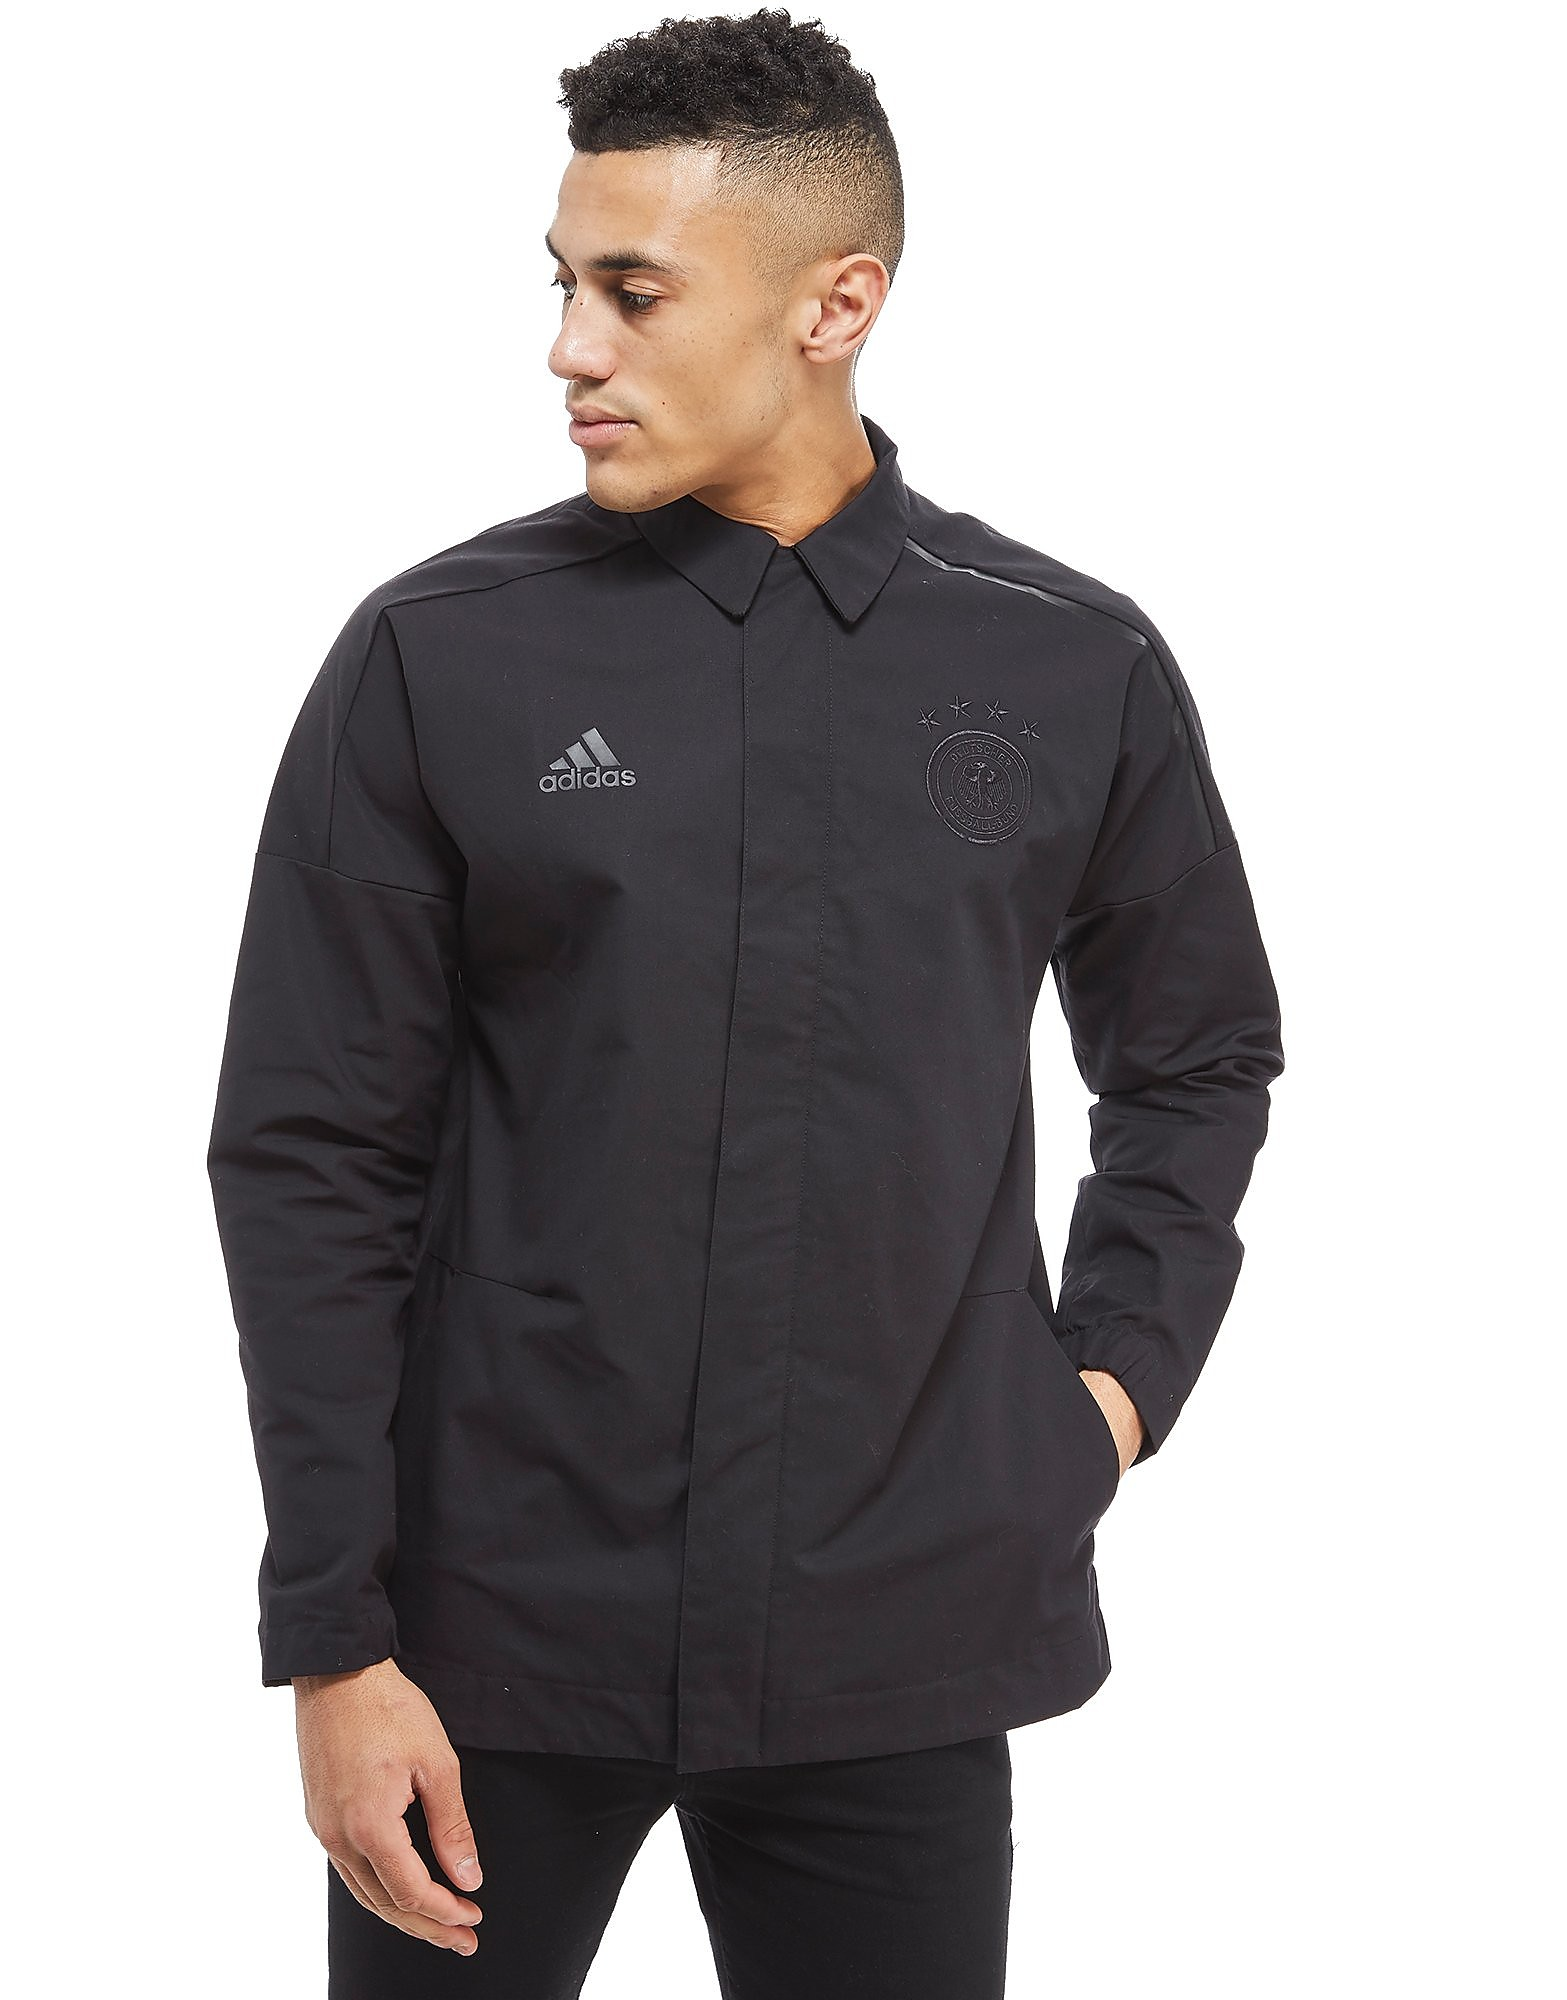 adidas Germany 2018 Z.N.E Jacket